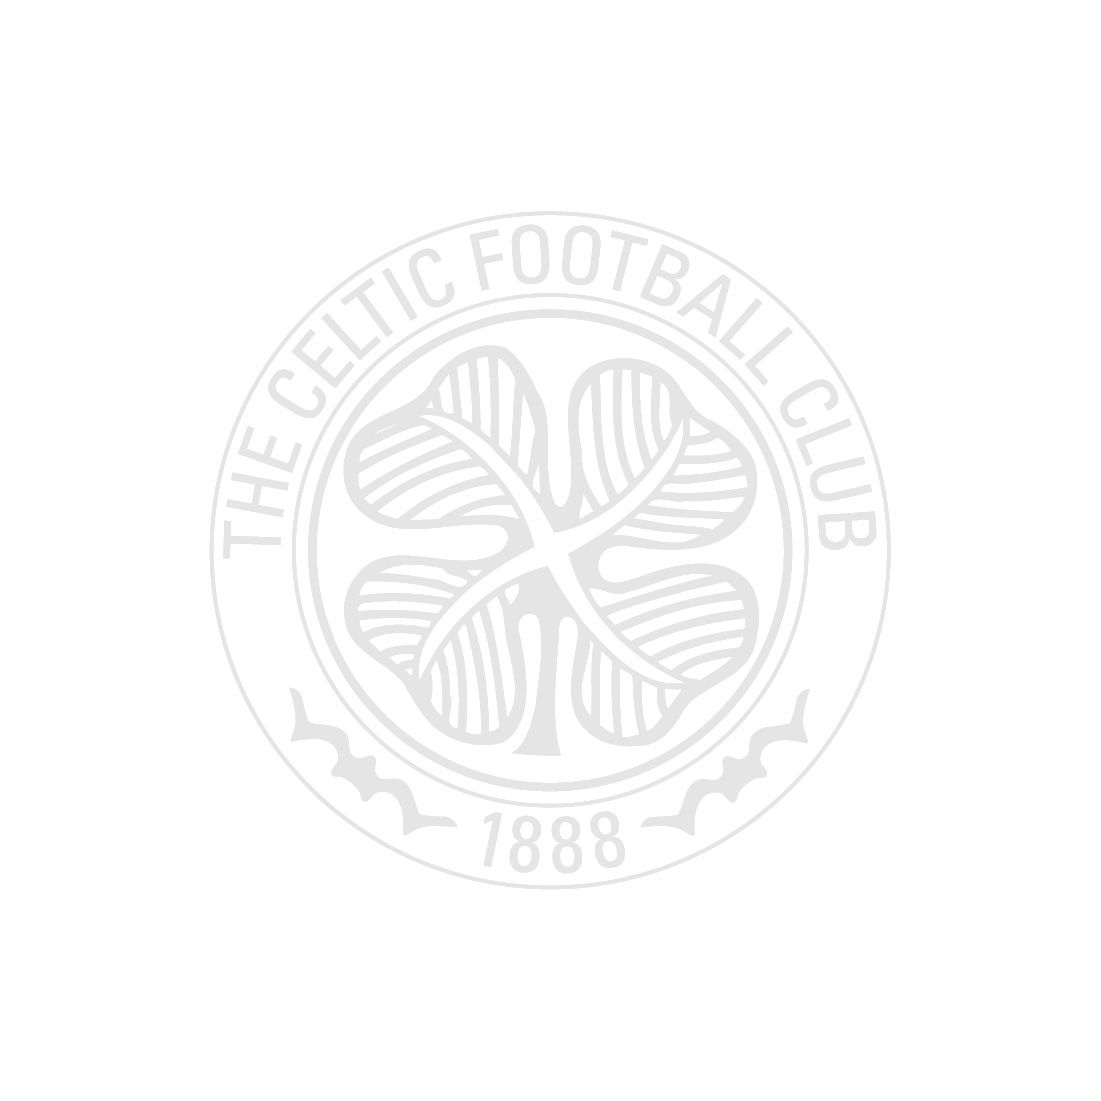 Celtic Limited Edition Griffiths Signed Print